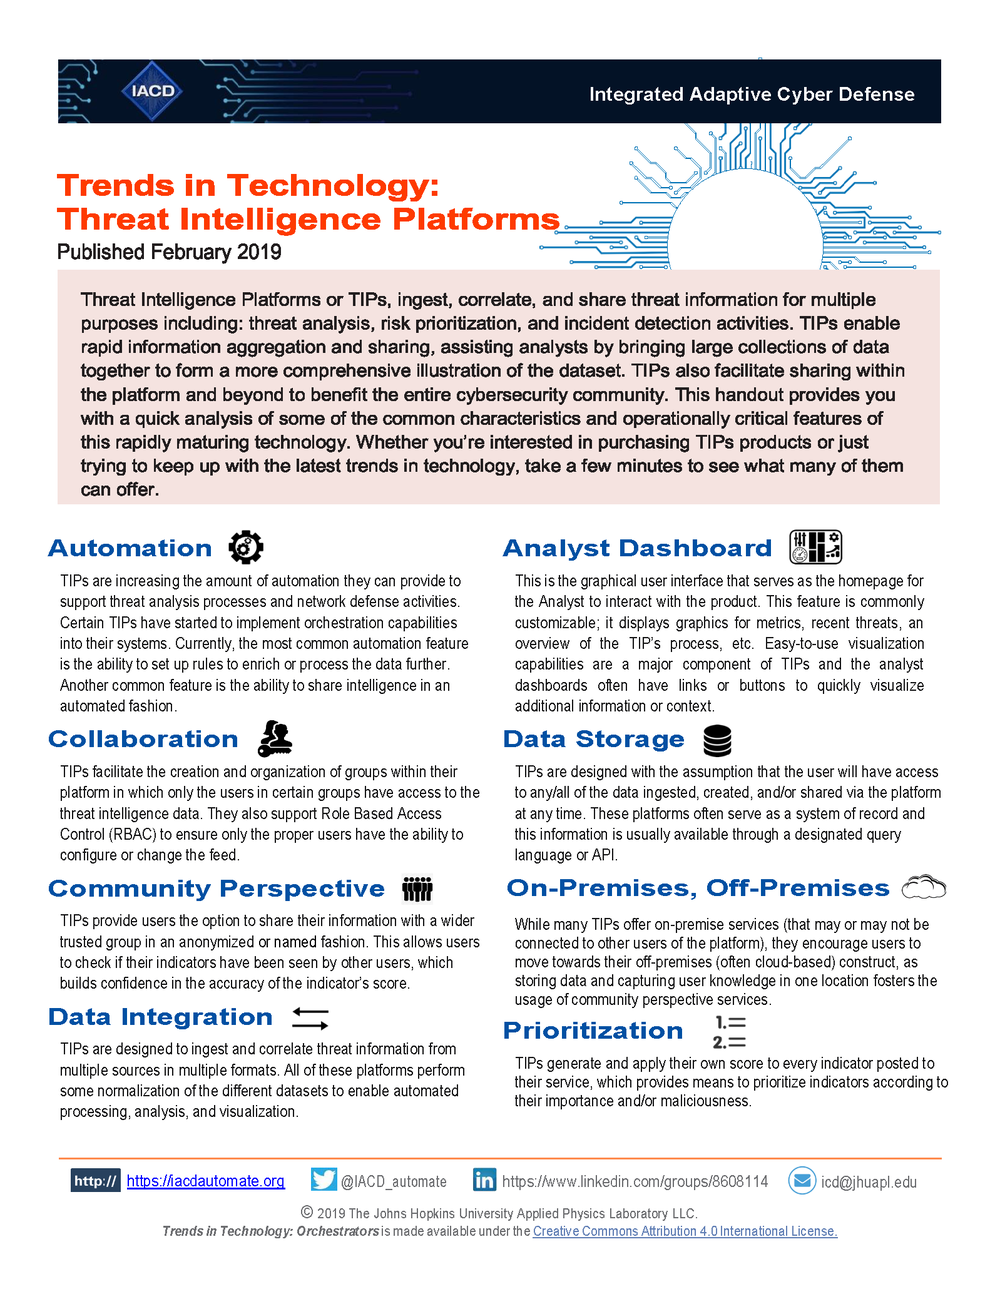 Trends in Technology: Threat Intelligence Platforms